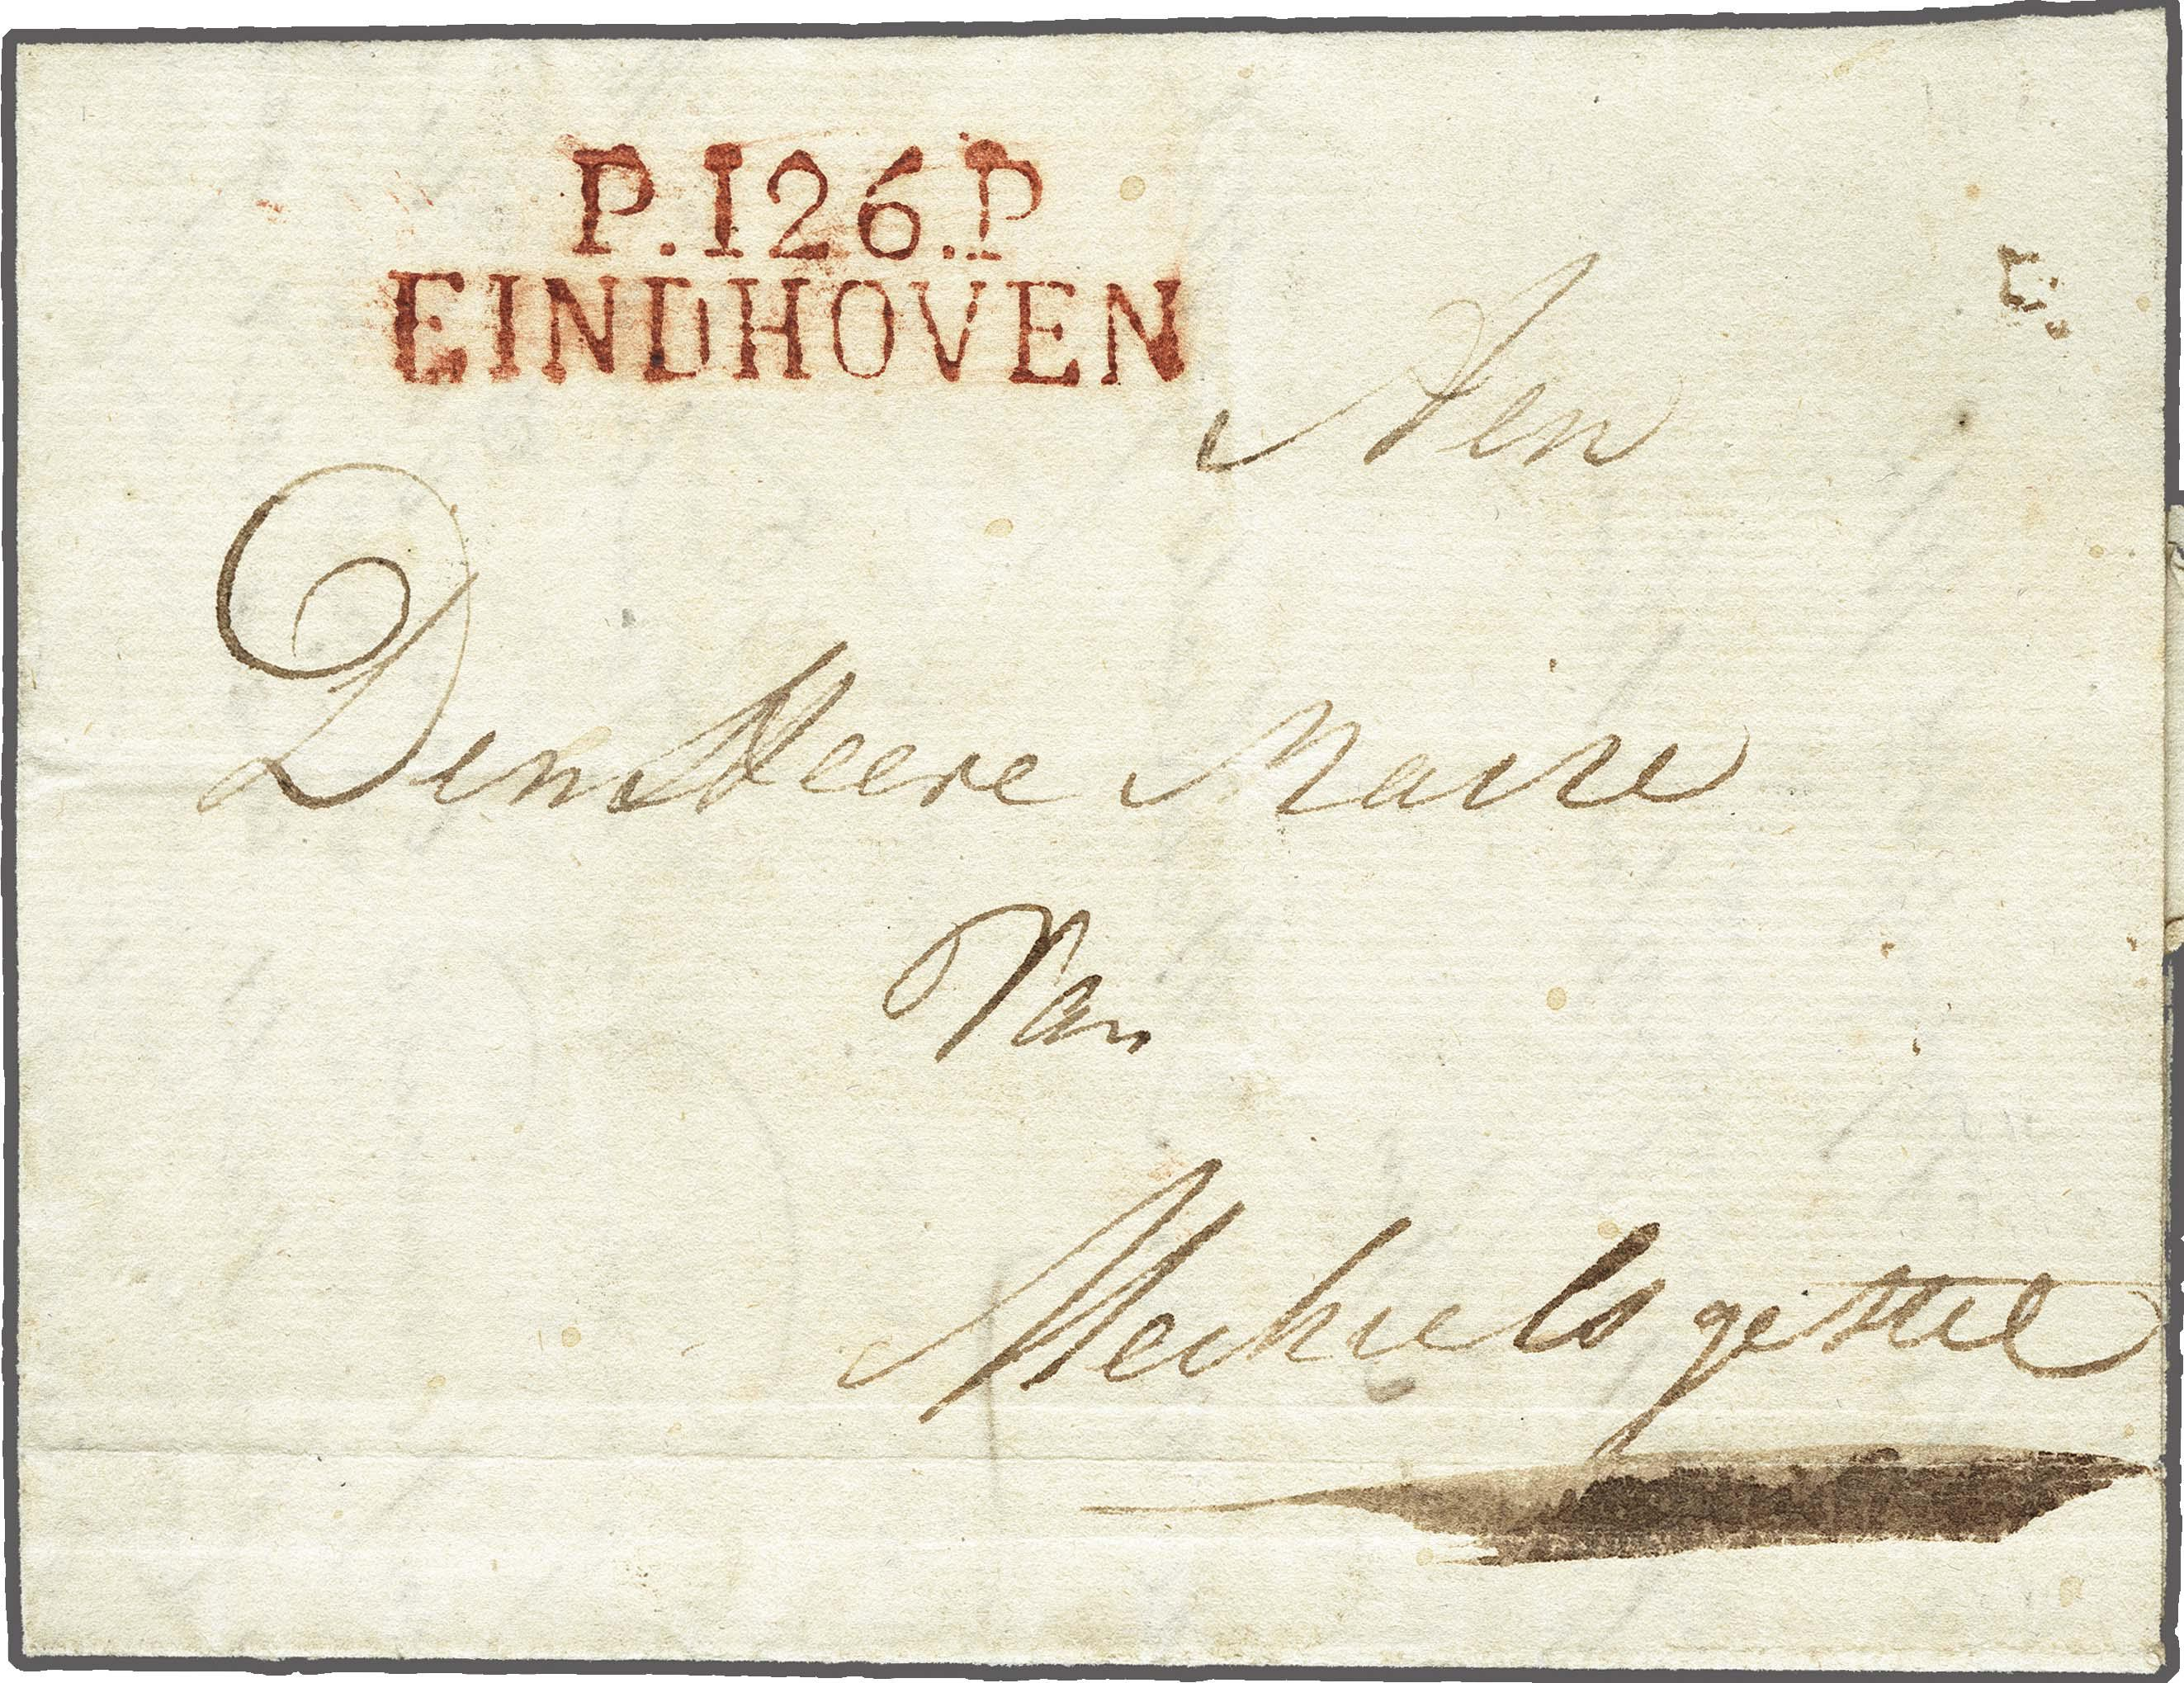 Lot 2368 - Netherlands and former colonies Netherlands -  Corinphila Veilingen Auction 250-253 - Day 3 - Netherlands and former colonies - Single lots & Picture postcards